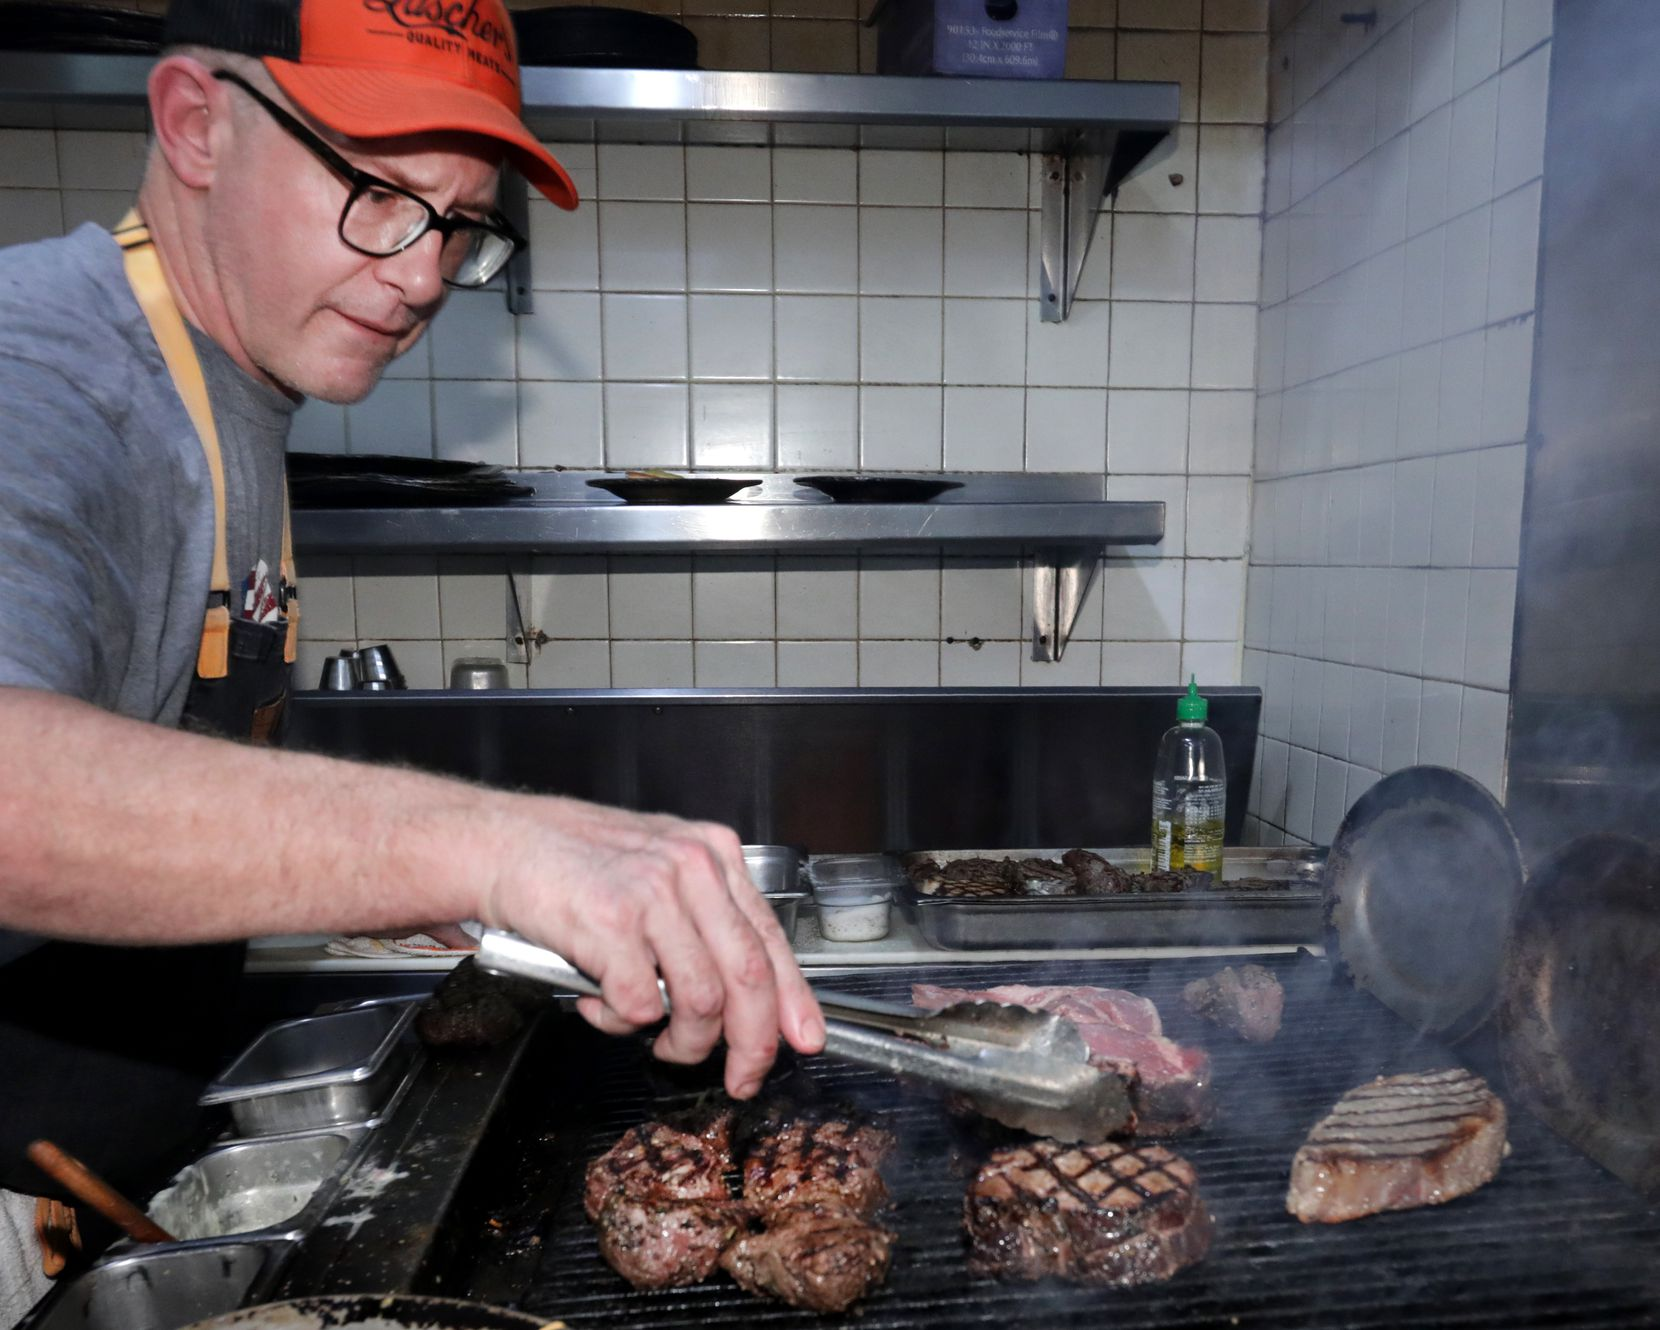 Brian Luscher, the second owner and chef, works the grill.